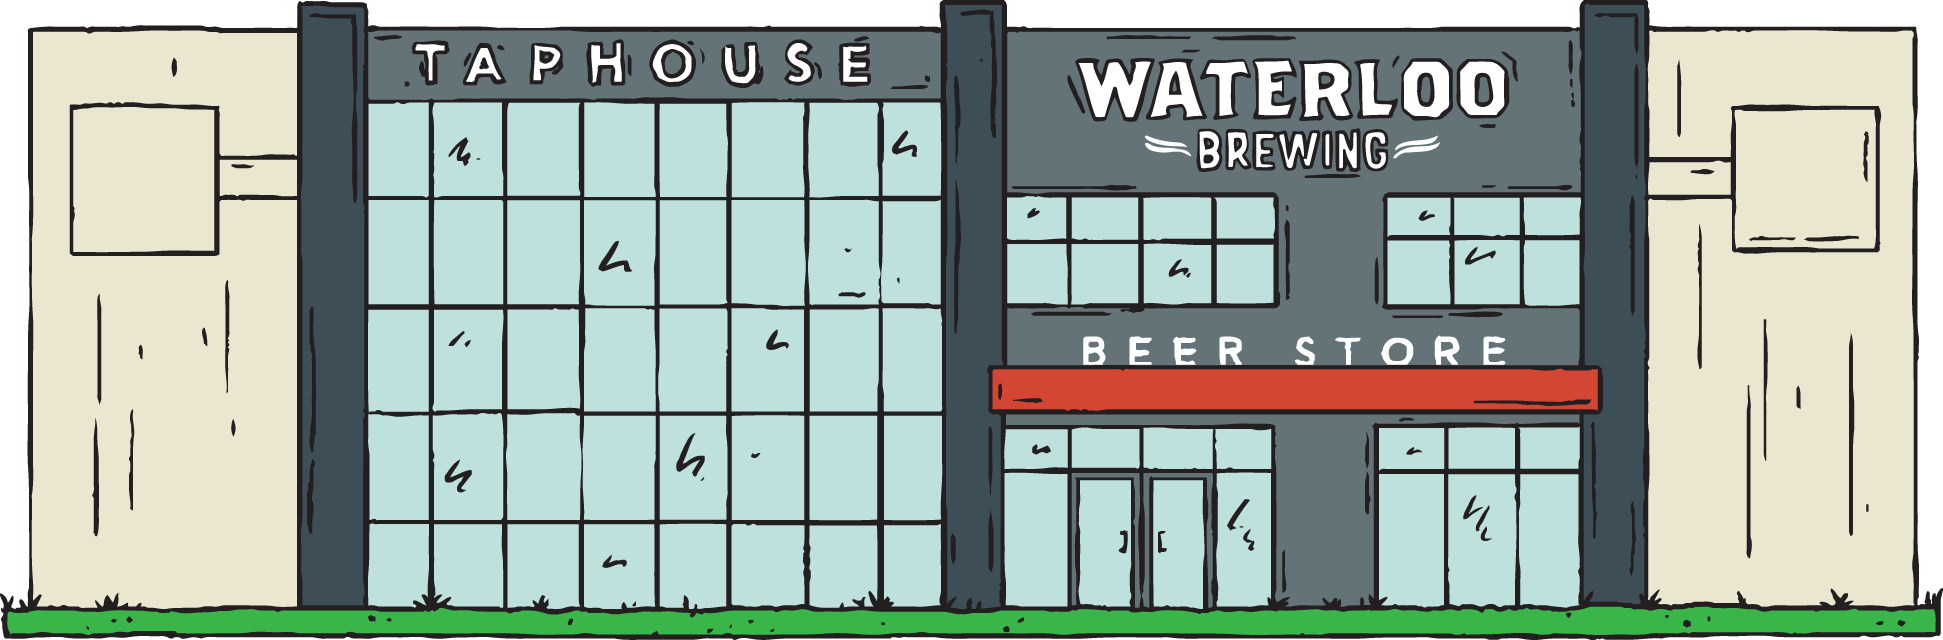 Waterloo Brewing Taphouse